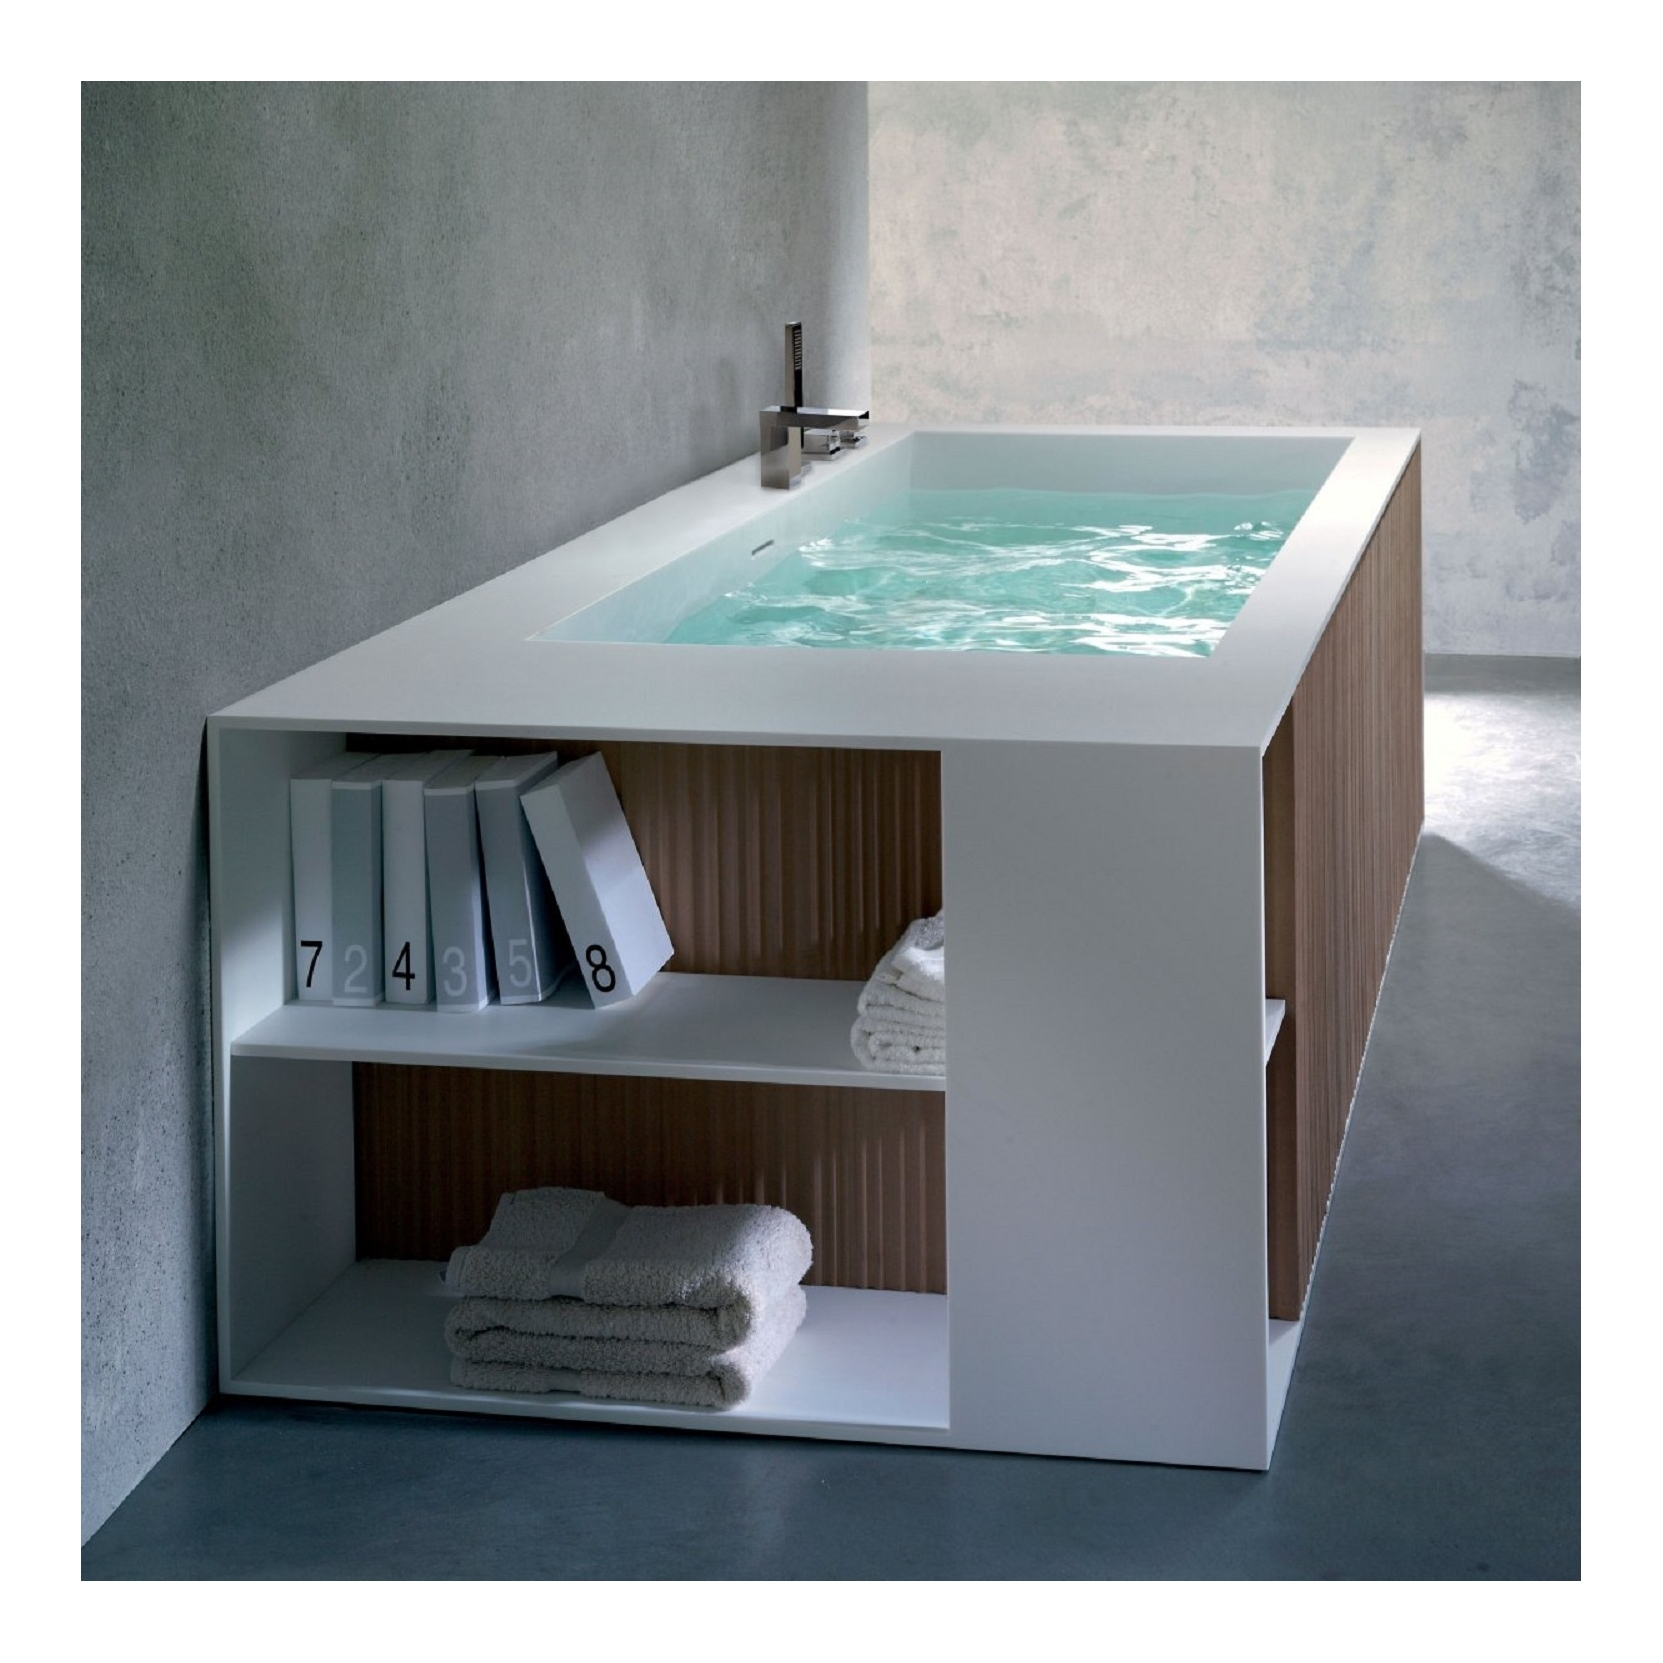 BLUBLEU VEER BATHTUB WITH PANELS RULE - TattaHome